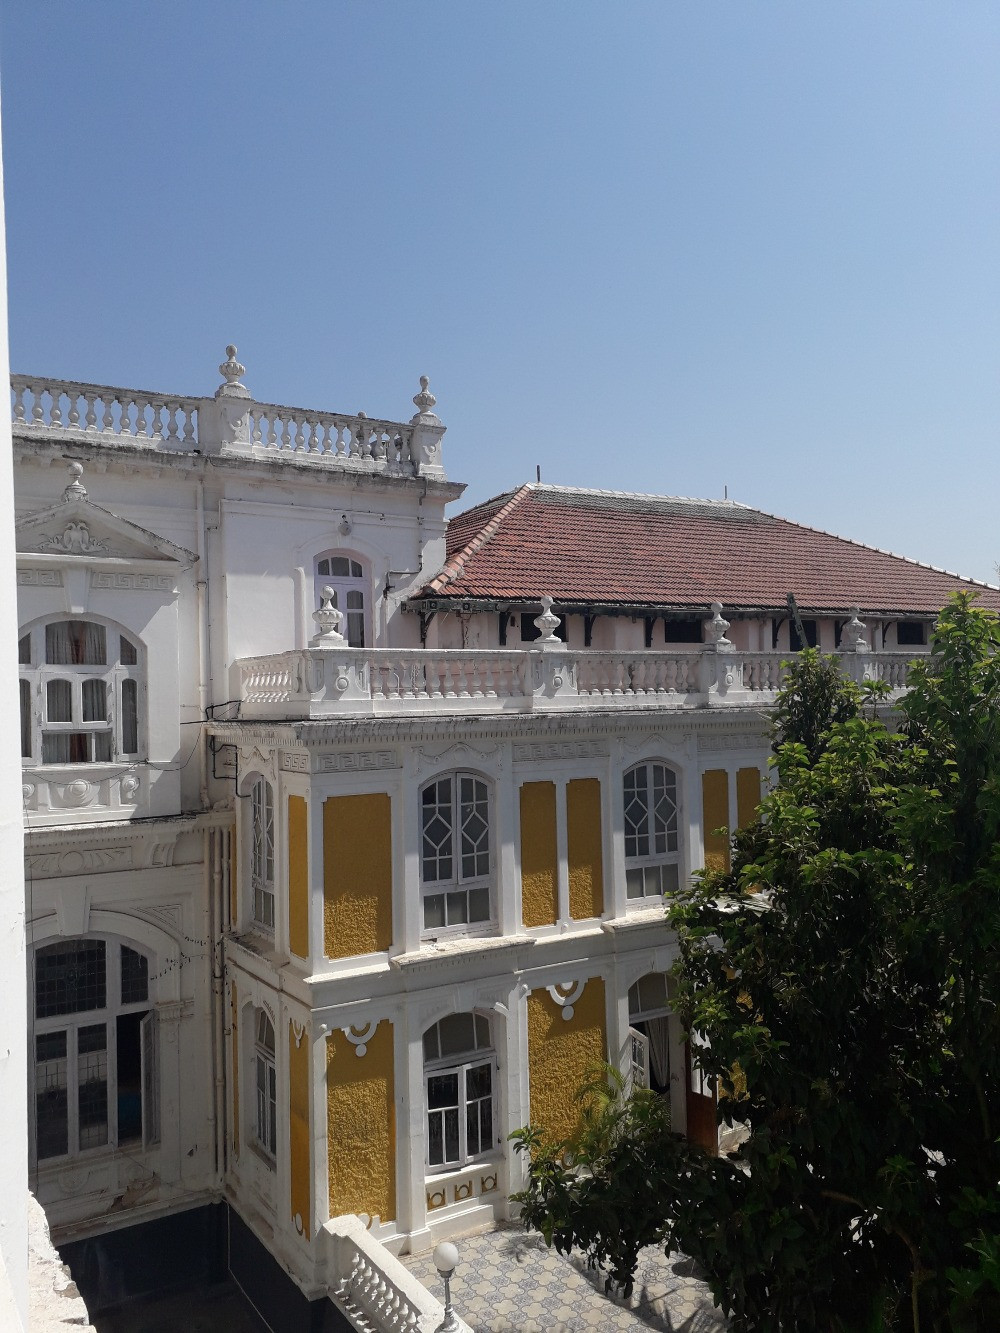 Courtyard and terrace in Lalitha Mahal Palace